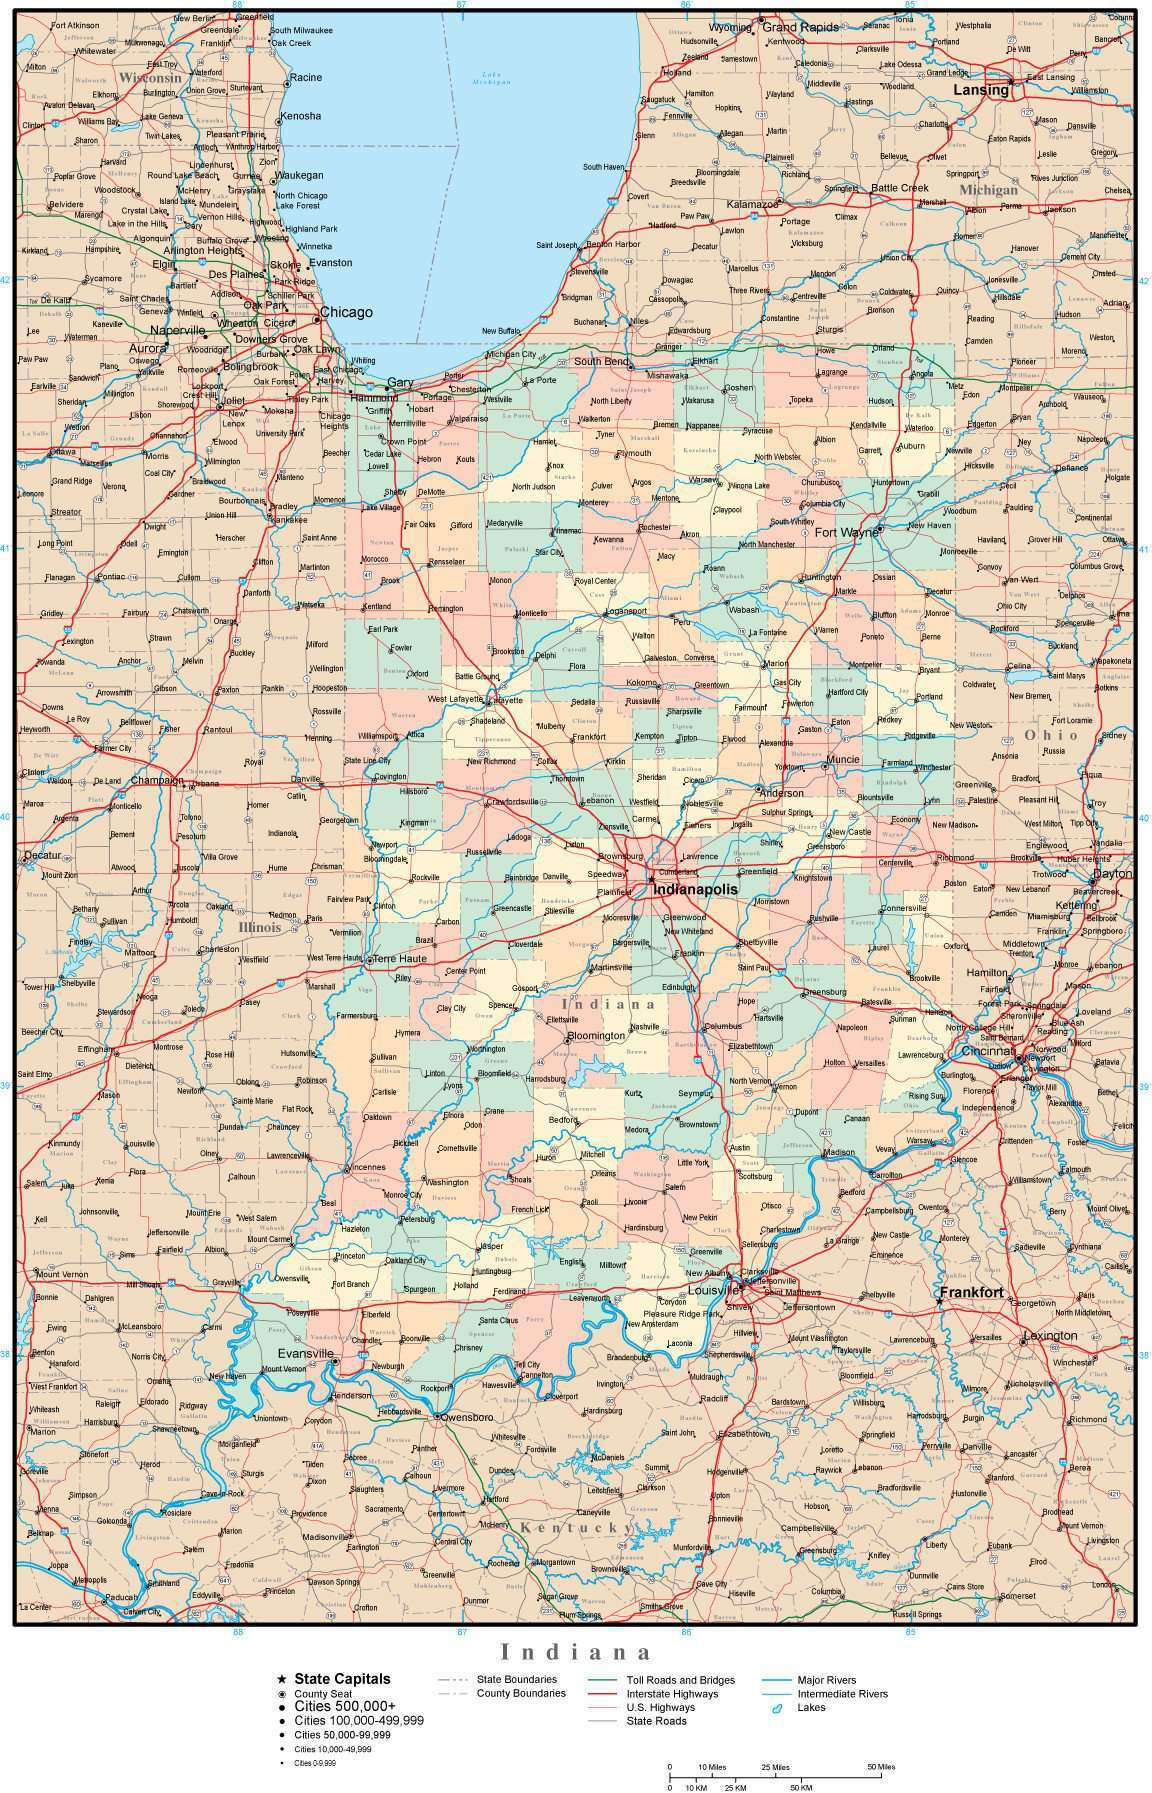 Indiana Map with Counties, Cities, Major Roads, Rivers and Lakes from on google maps indiana usa, indiana location in the usa, map of richmond usa, map of the midwest usa, map of dayton usa, map of san antonio usa, map of northwest territory usa, map of great lakes region usa, map of upper midwest usa, map of indiana showing counties, map of east central usa, map of eastern indiana, map of southern indiana, map of the northeast usa, map of dc usa, united states political map usa, map of california usa, map of north central usa, map of the northwest usa, map of indiana pa,